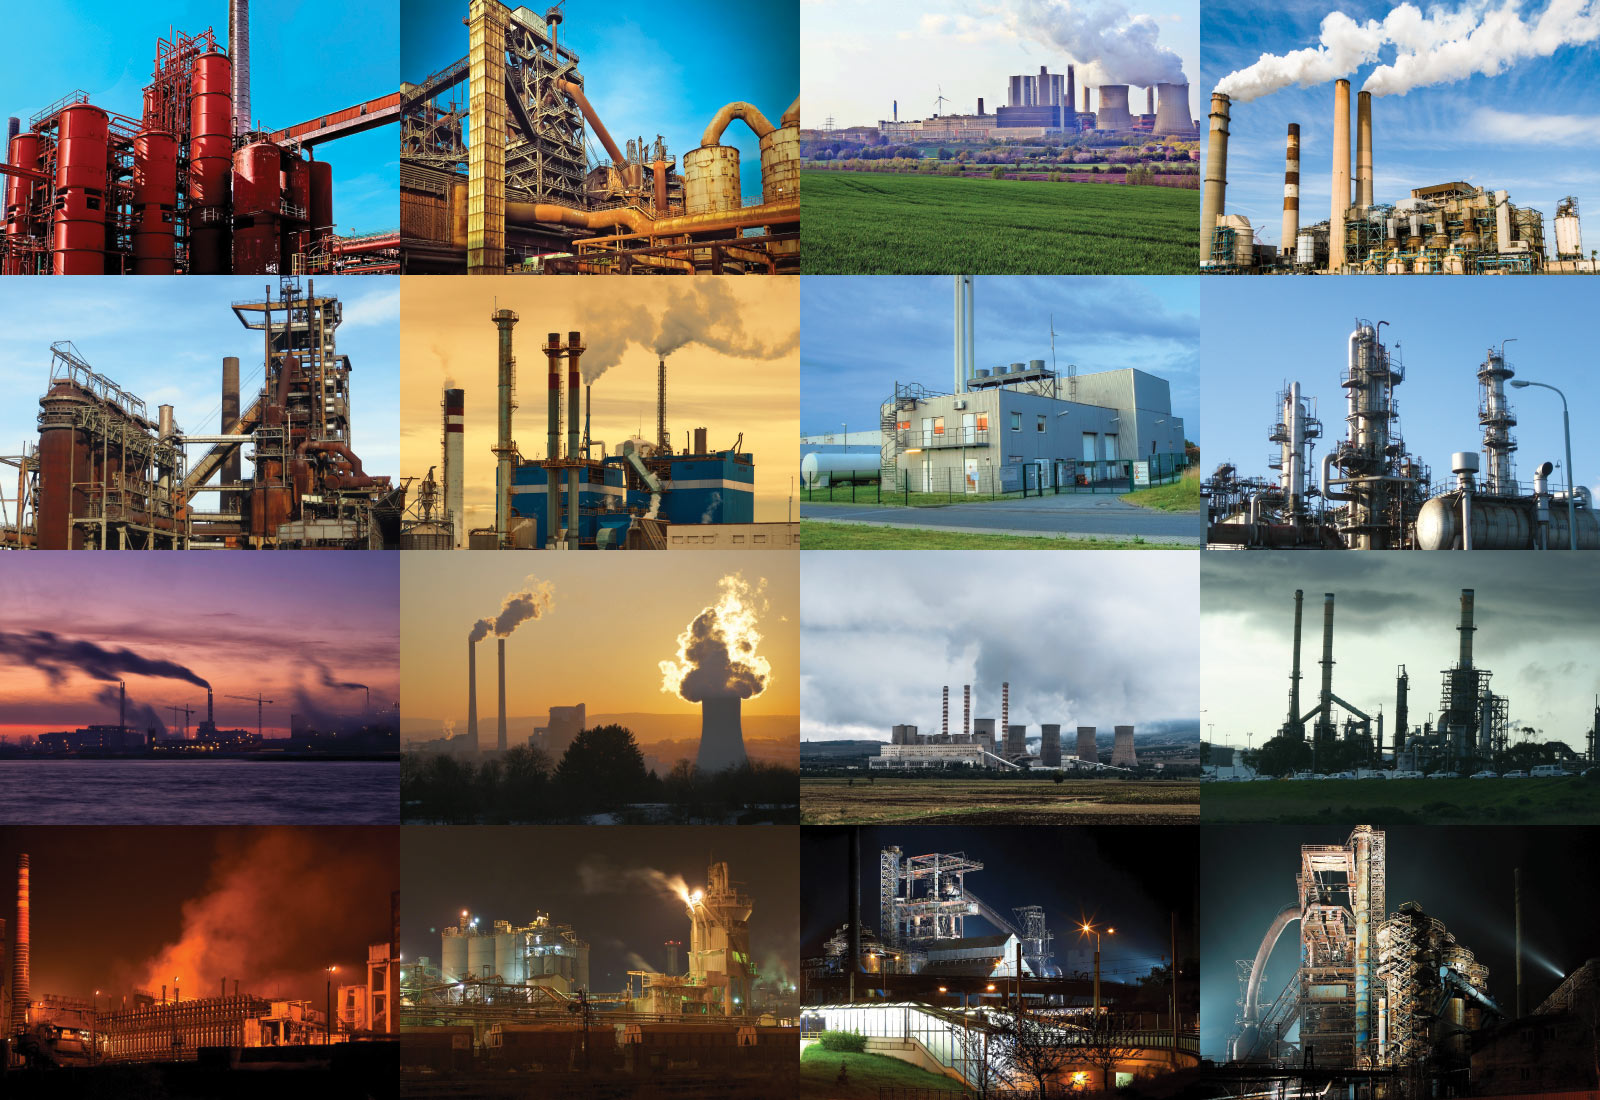 An assortment of factory and power plant images